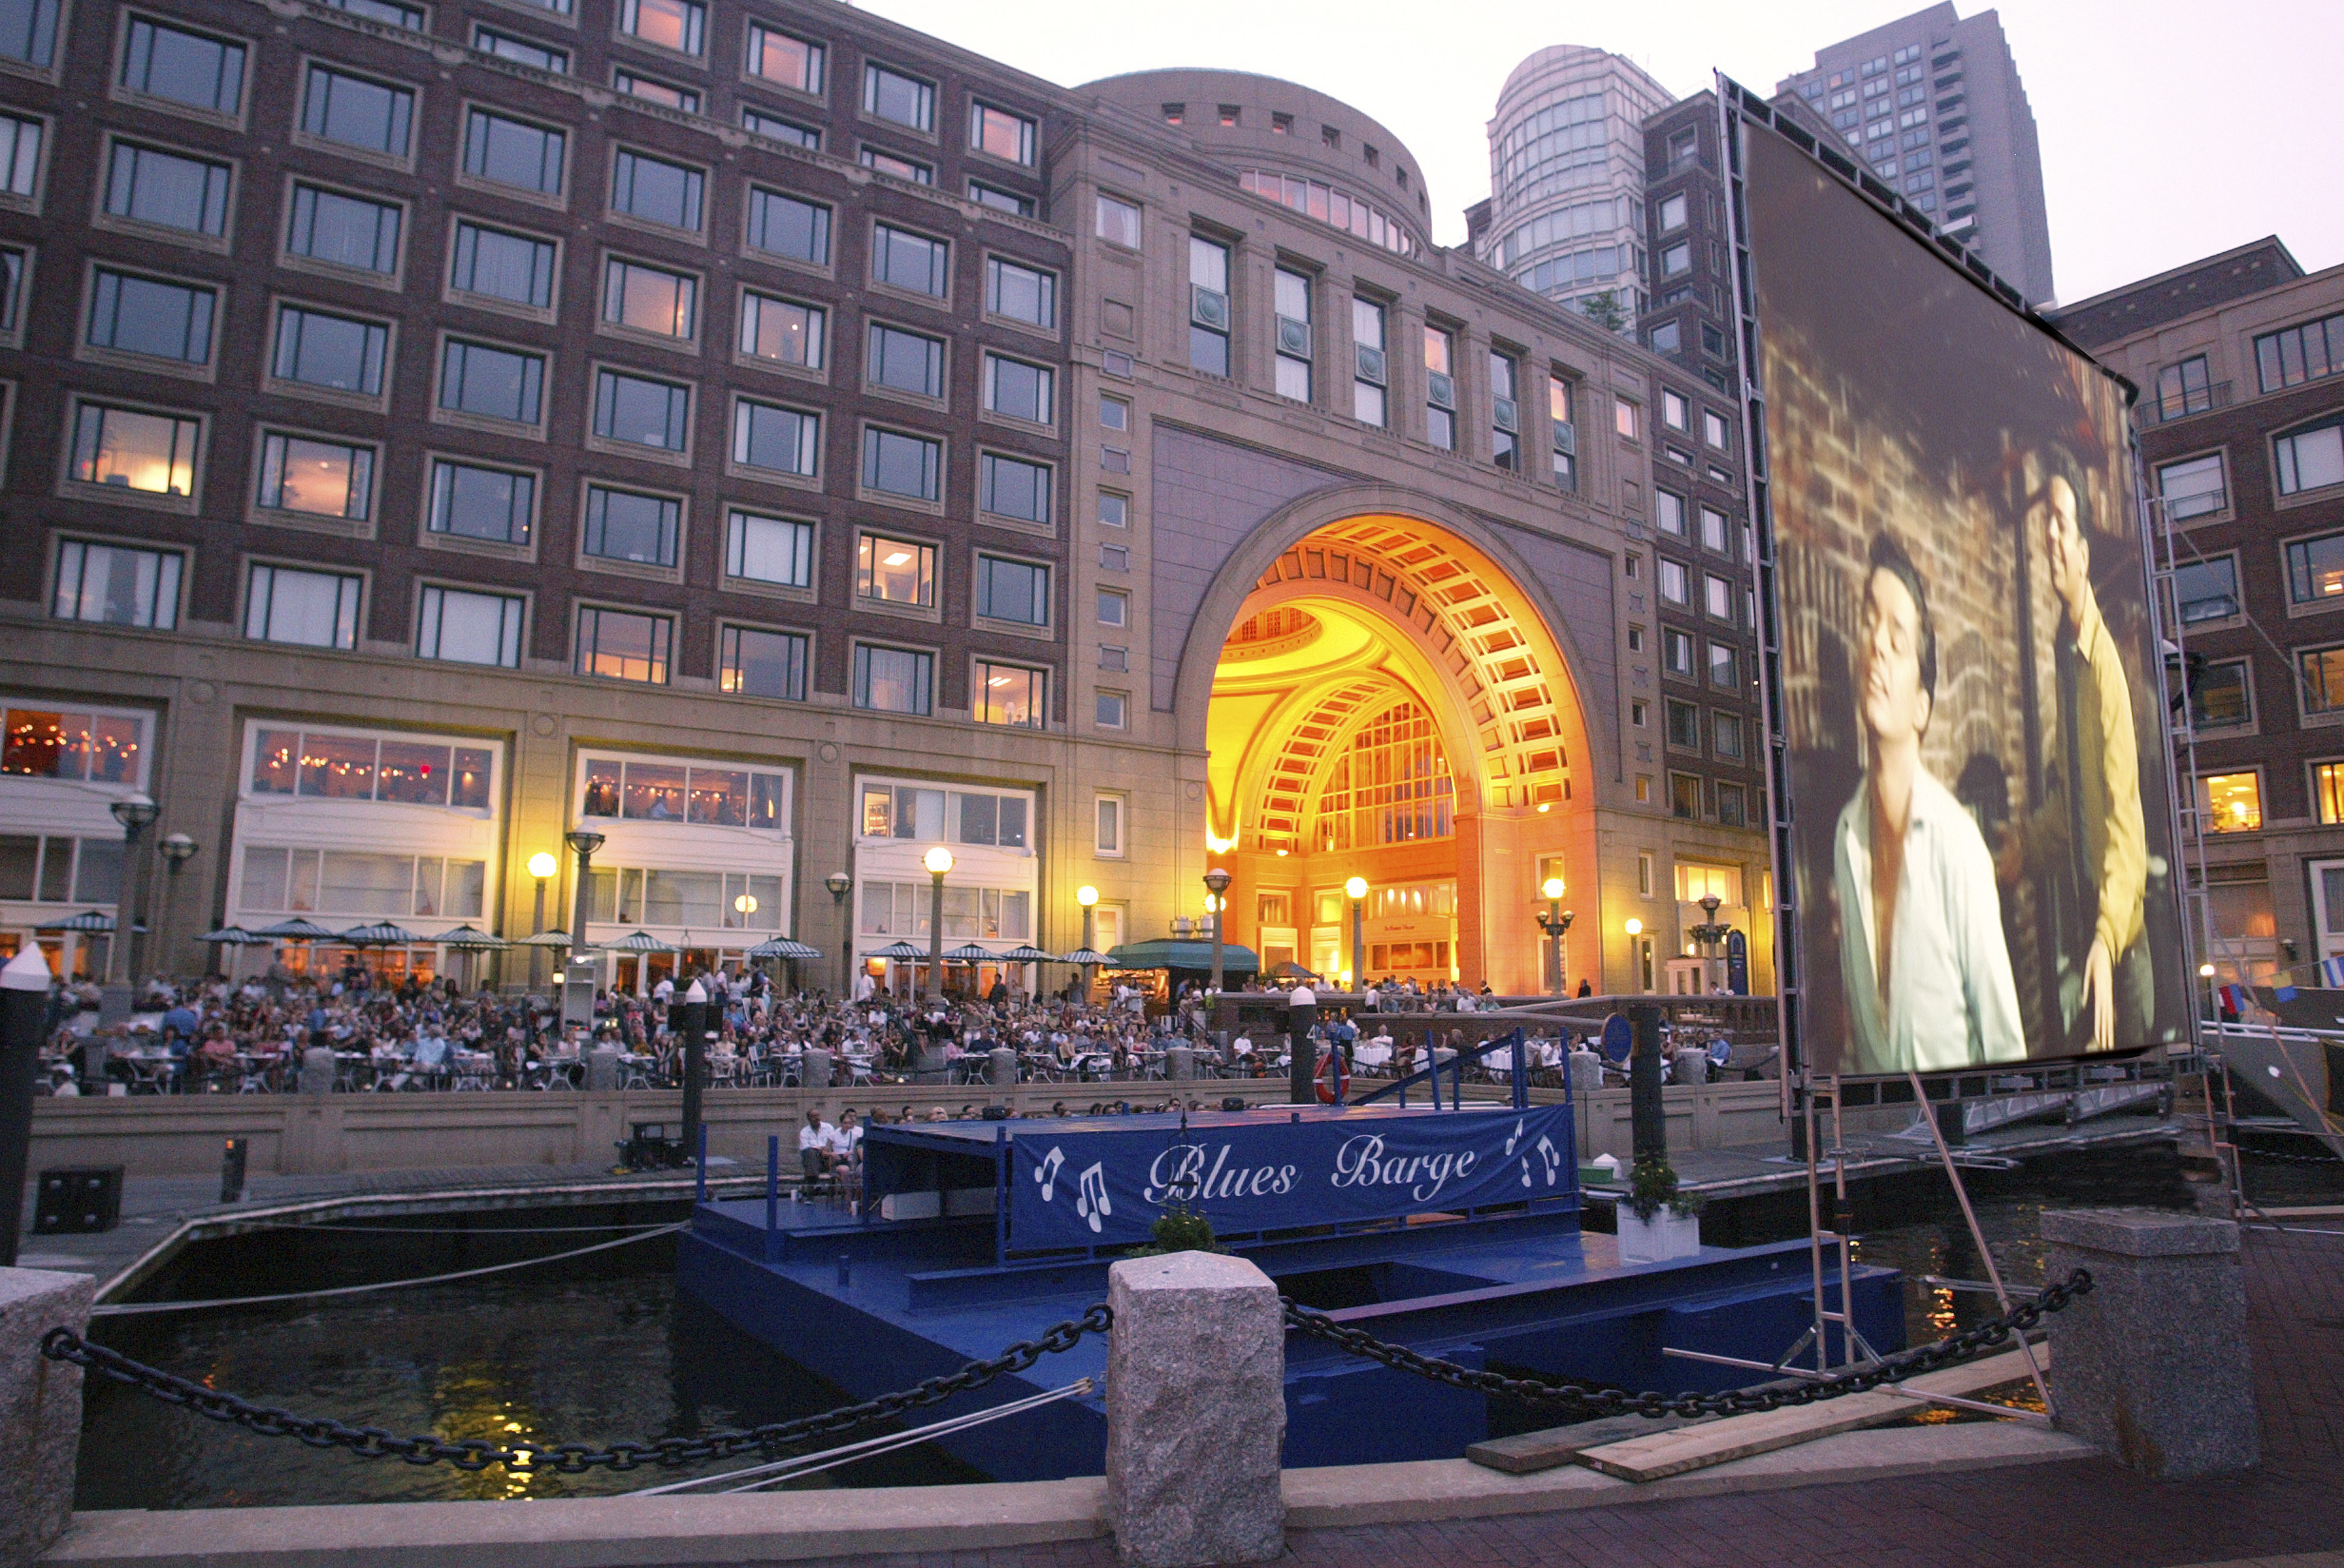 Catch Boston S Harbor Hotel S Summer Entertainment While You Can Hotel Junkie